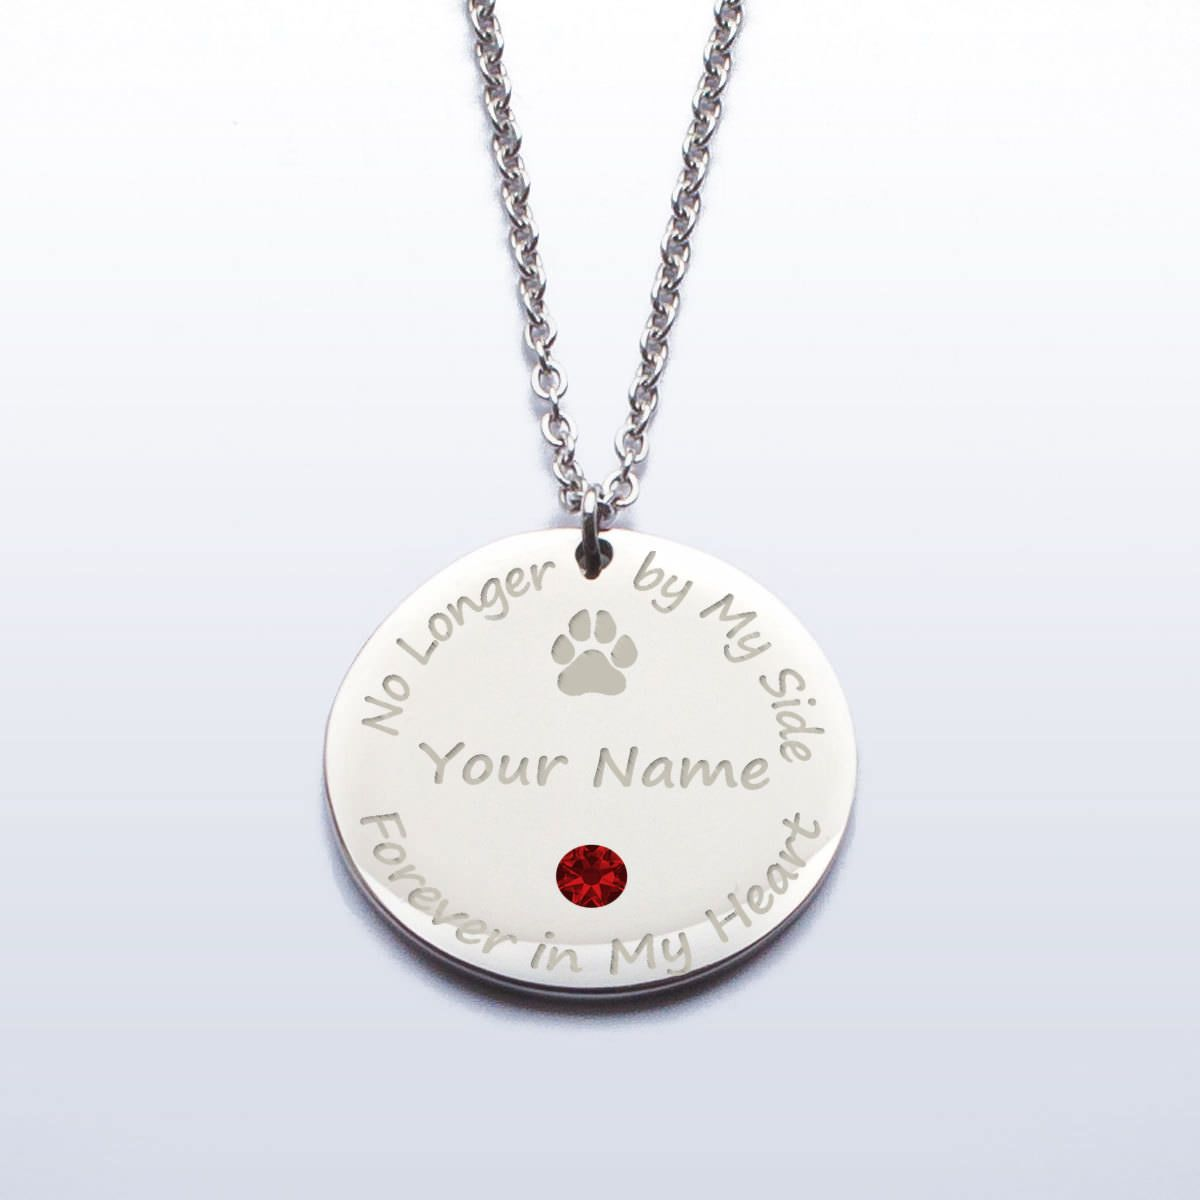 Personalized pet memorial pendant with swarovski crystal birthstone personalized pet memorial pendant with swarovski crystal birthstone name aloadofball Images